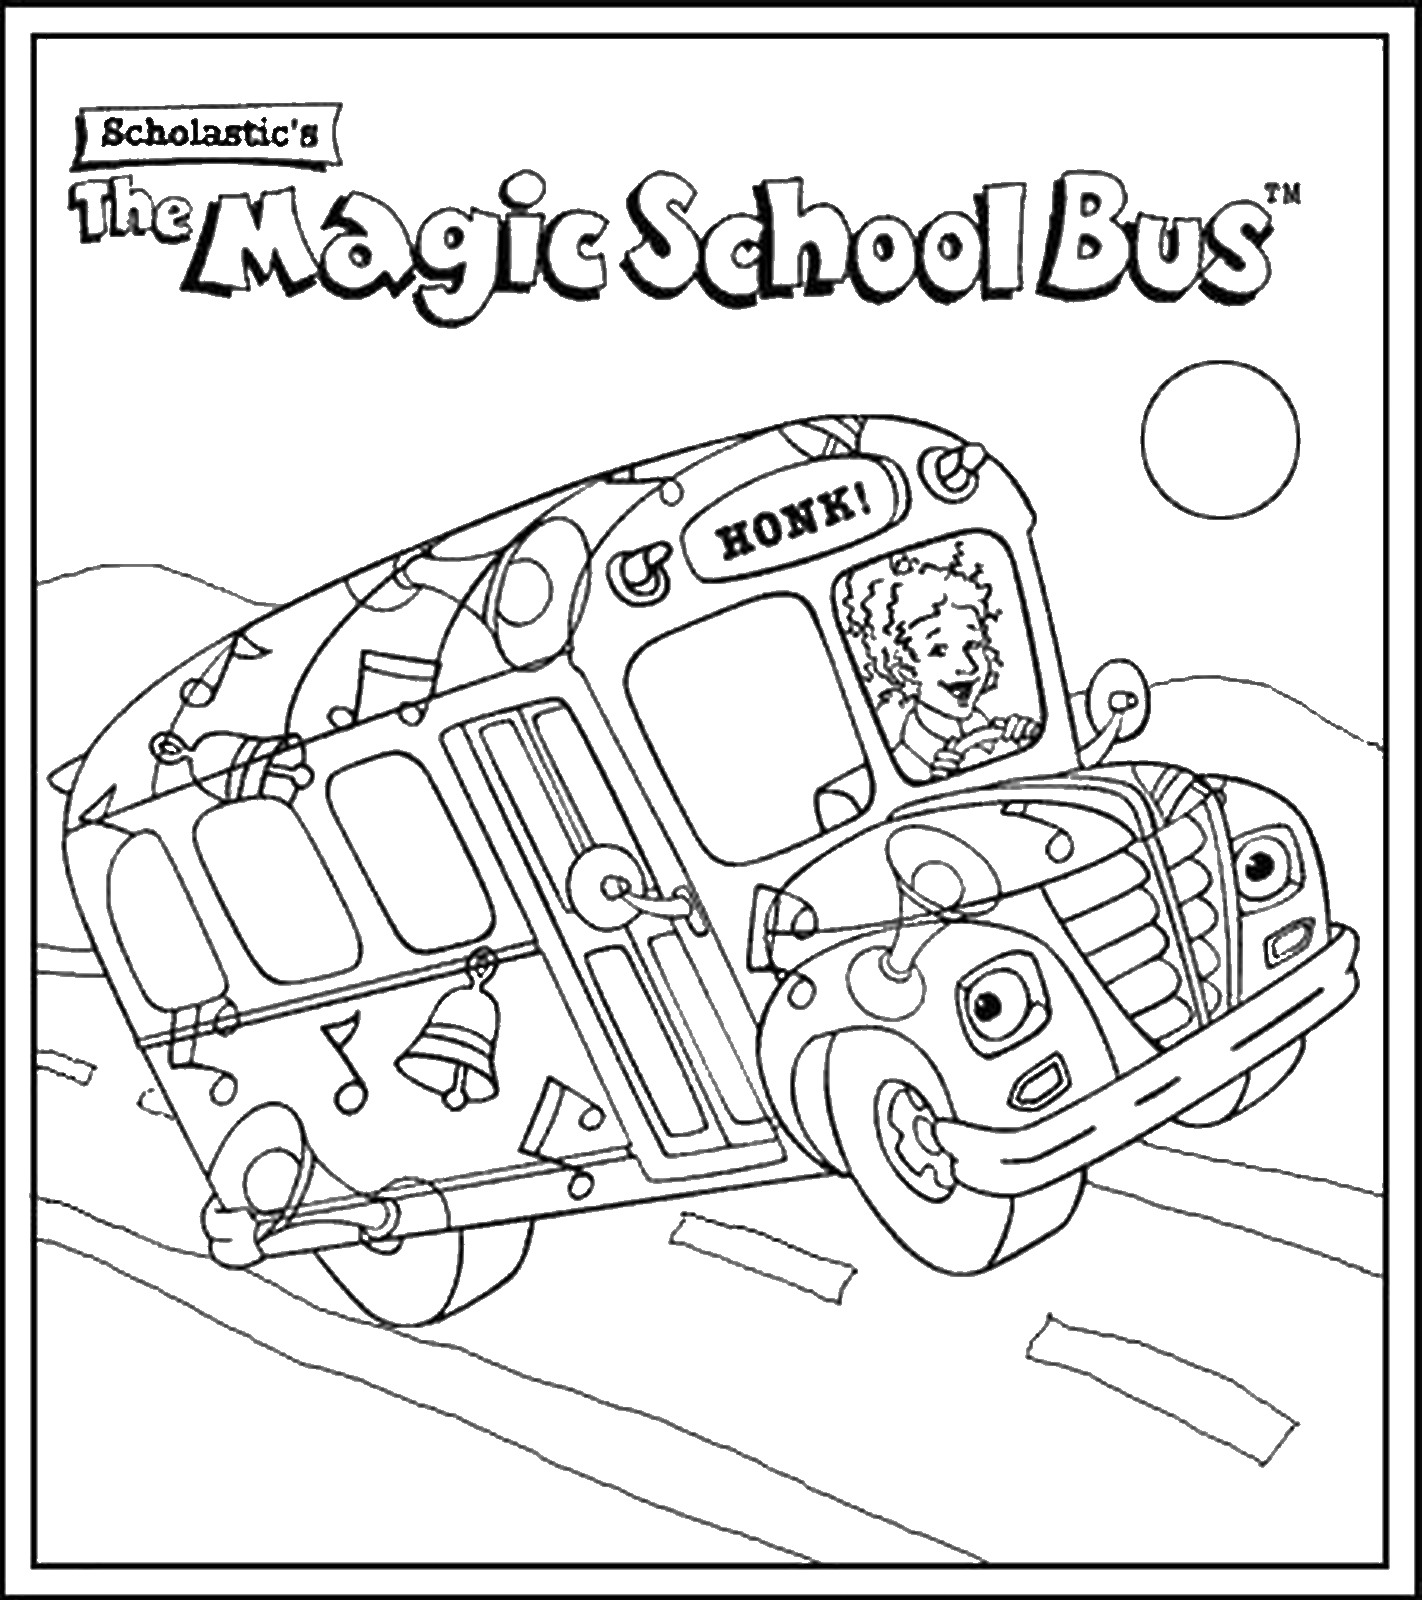 13 the magic school bus pictures to print and color